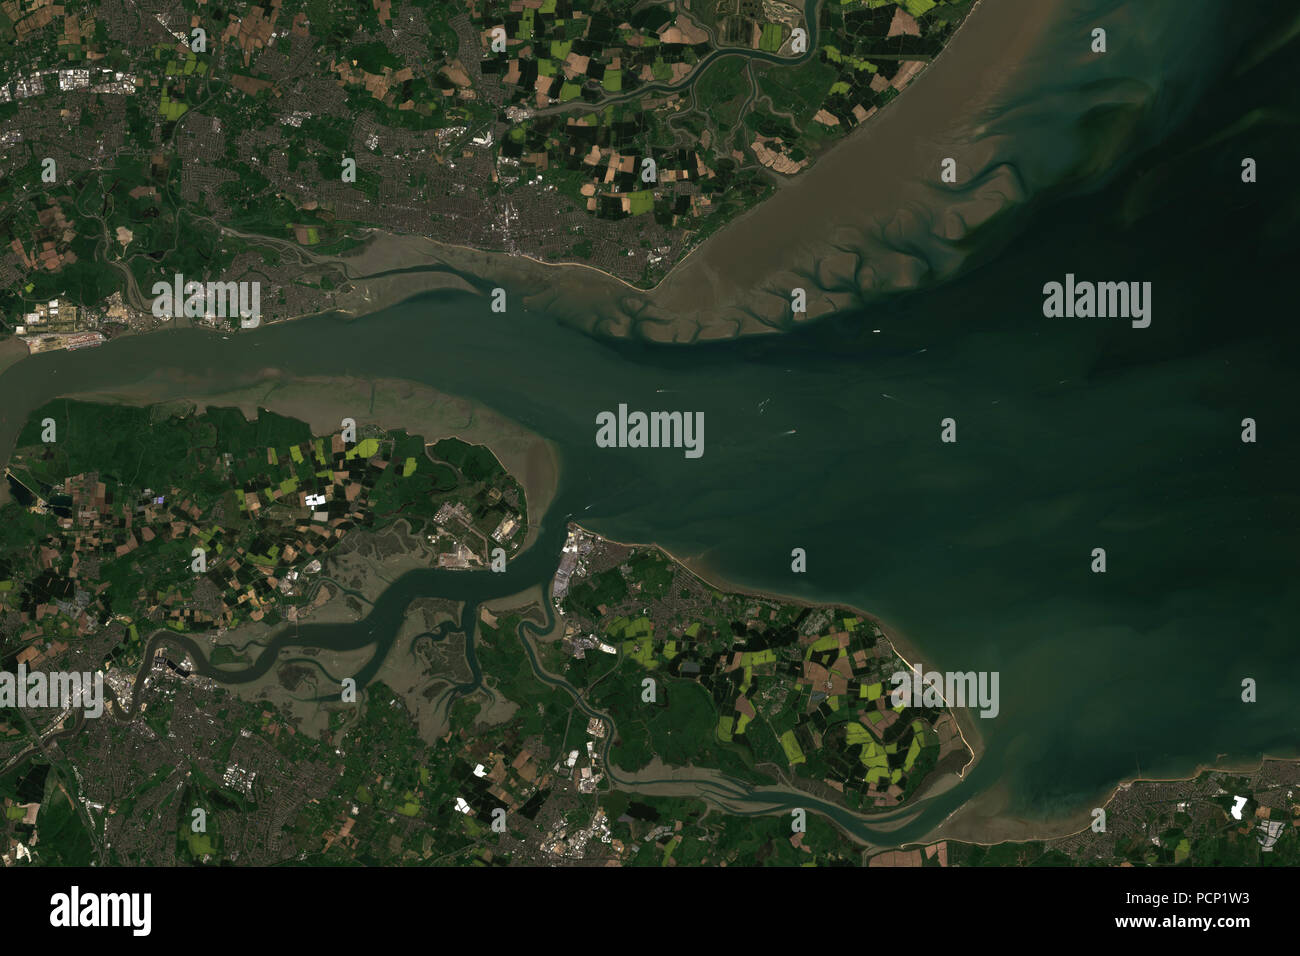 River thames estuary in Great Britain seen from space - contains modified Copernicus Sentinel data - Stock Image